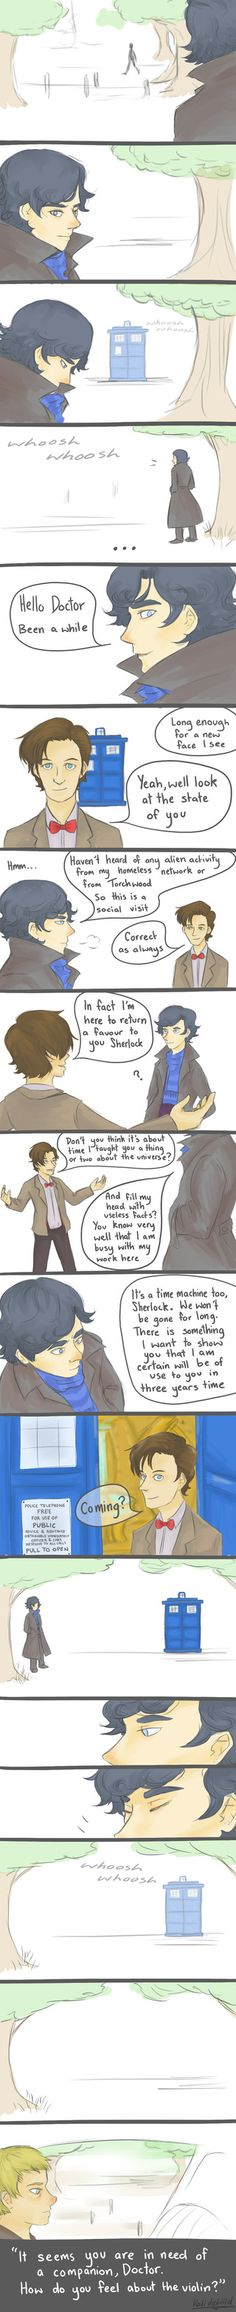 These fan-made Wholock things are awesome!  Makes me wish that this would actually happen. :D